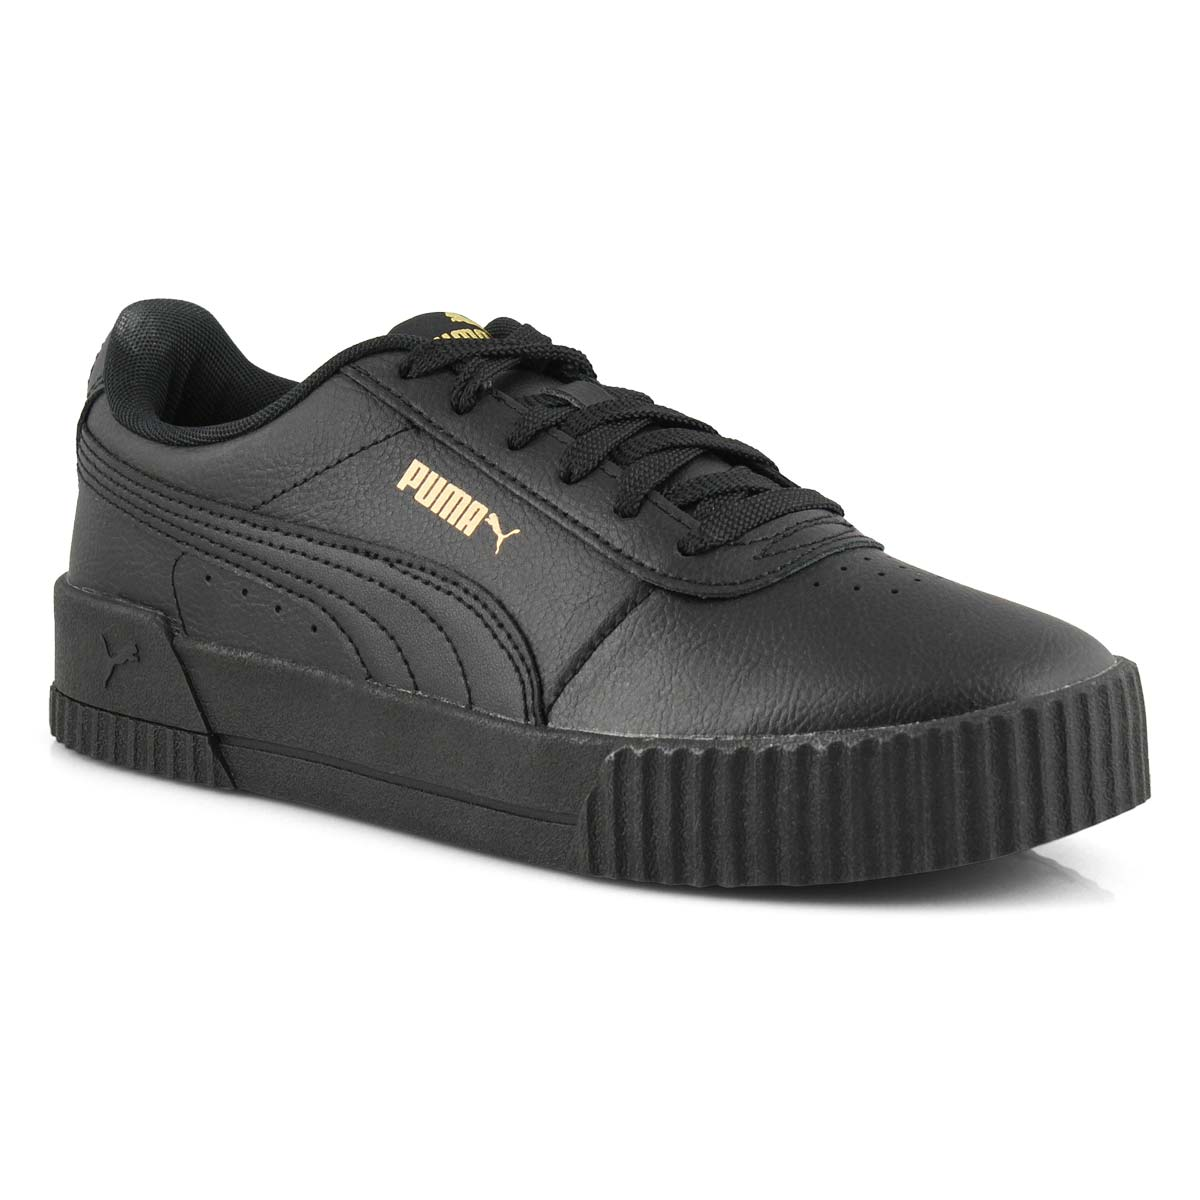 Lds Carina L blk/gld lace up sneaker